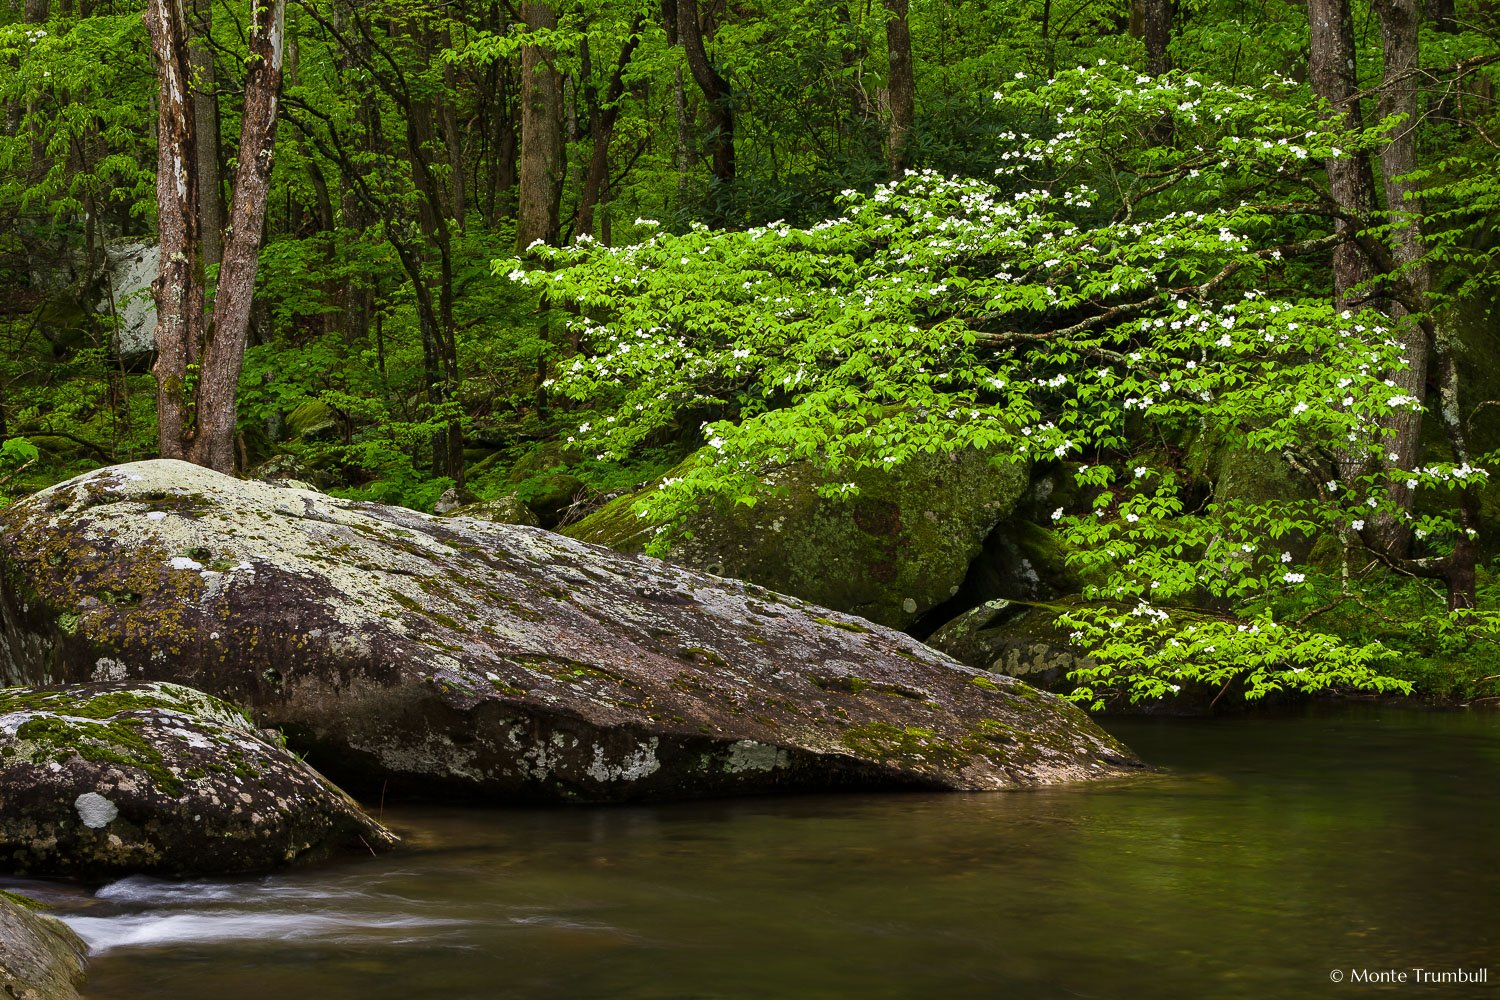 MT-20150426-091804-0028-middle-fork-little-river-dogwood-great-smoky-mountains-national-park.jpg